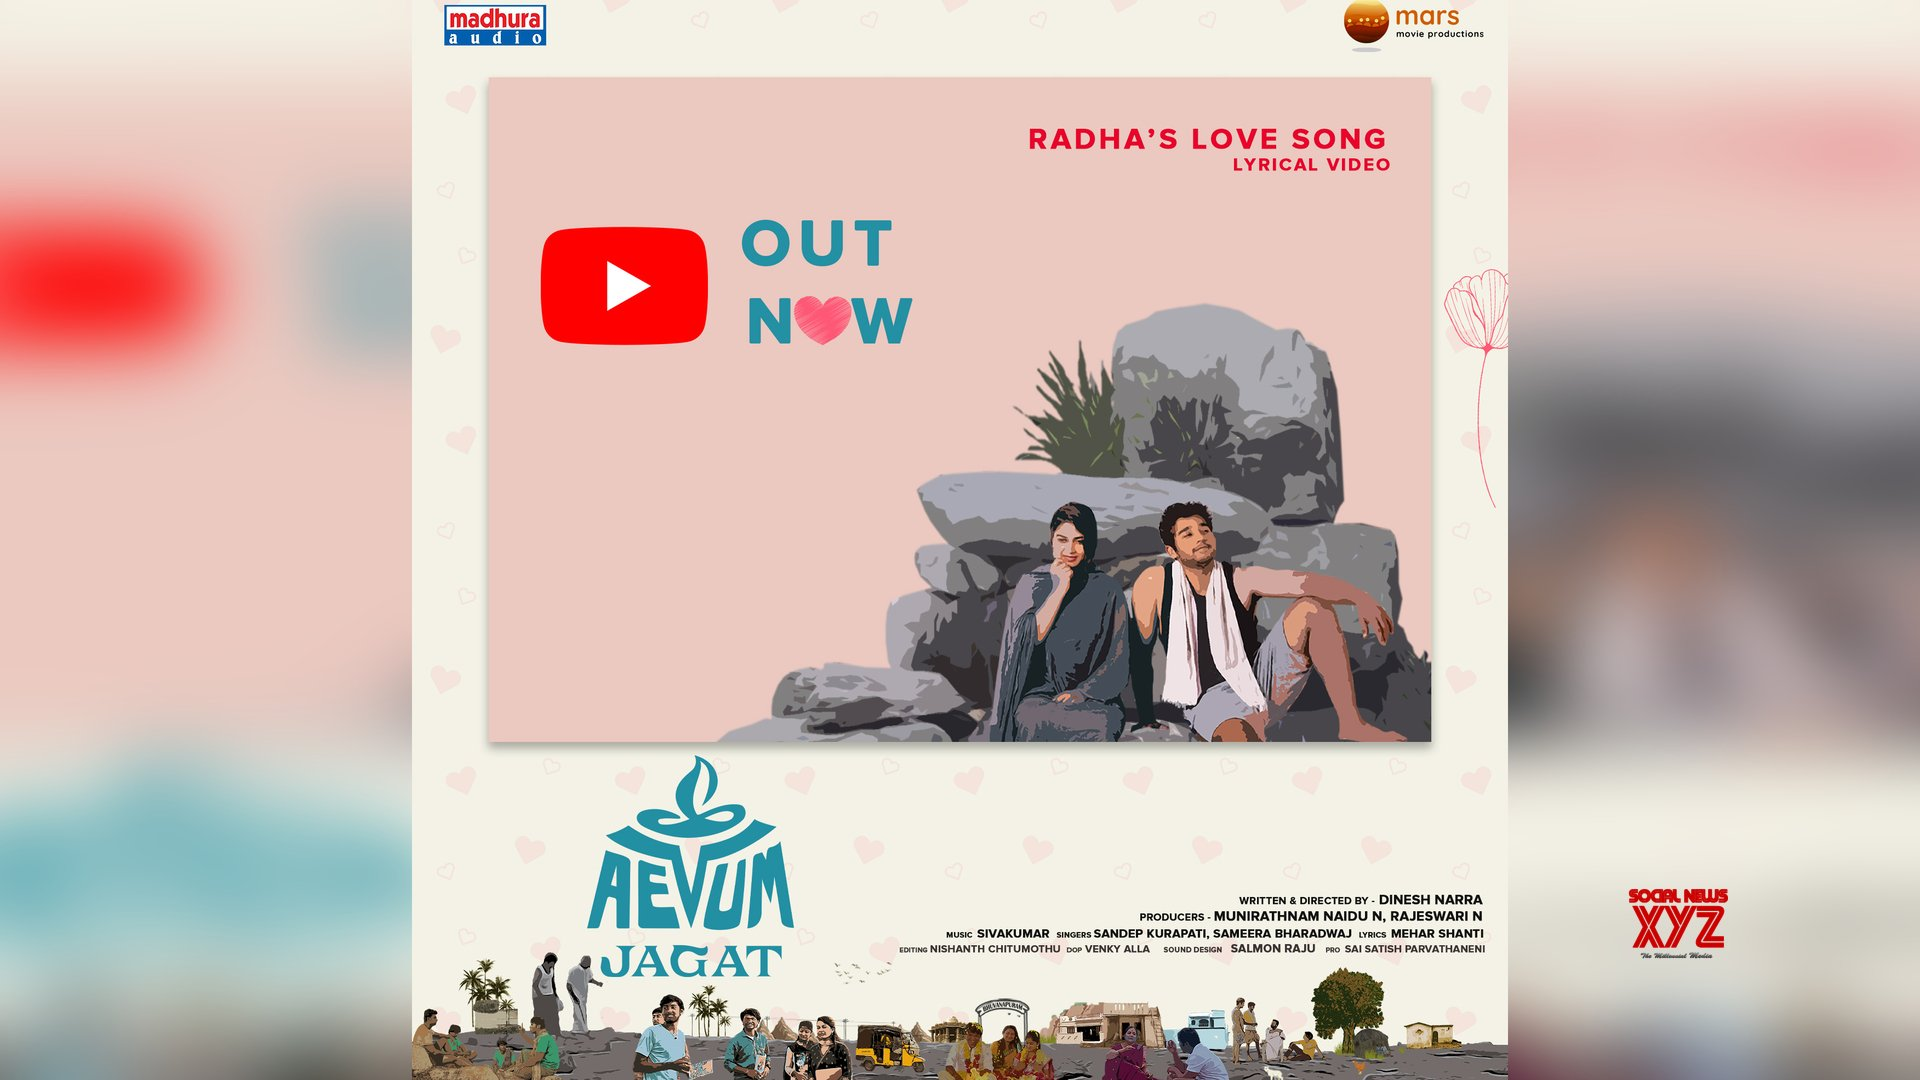 Ananya Nagalla Released Radha's Love Video Song From Aevum Jagat Movie